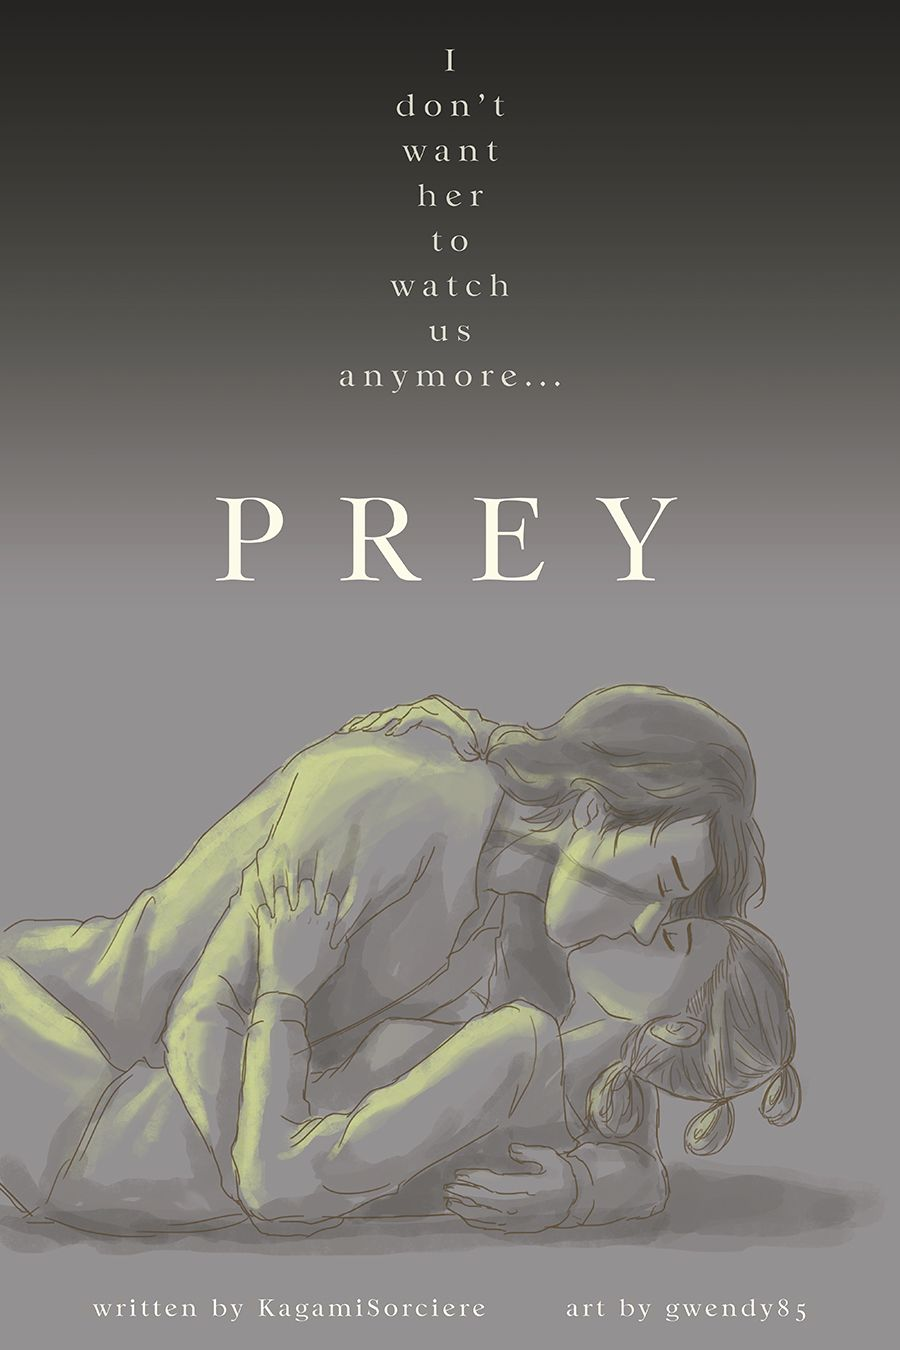 """PREY Ch 25 - Late """"I don't want her to watch us anymore…"""" After so many chapters, we finally have a beautiful kiss! Thank you for your beautiful story!"""